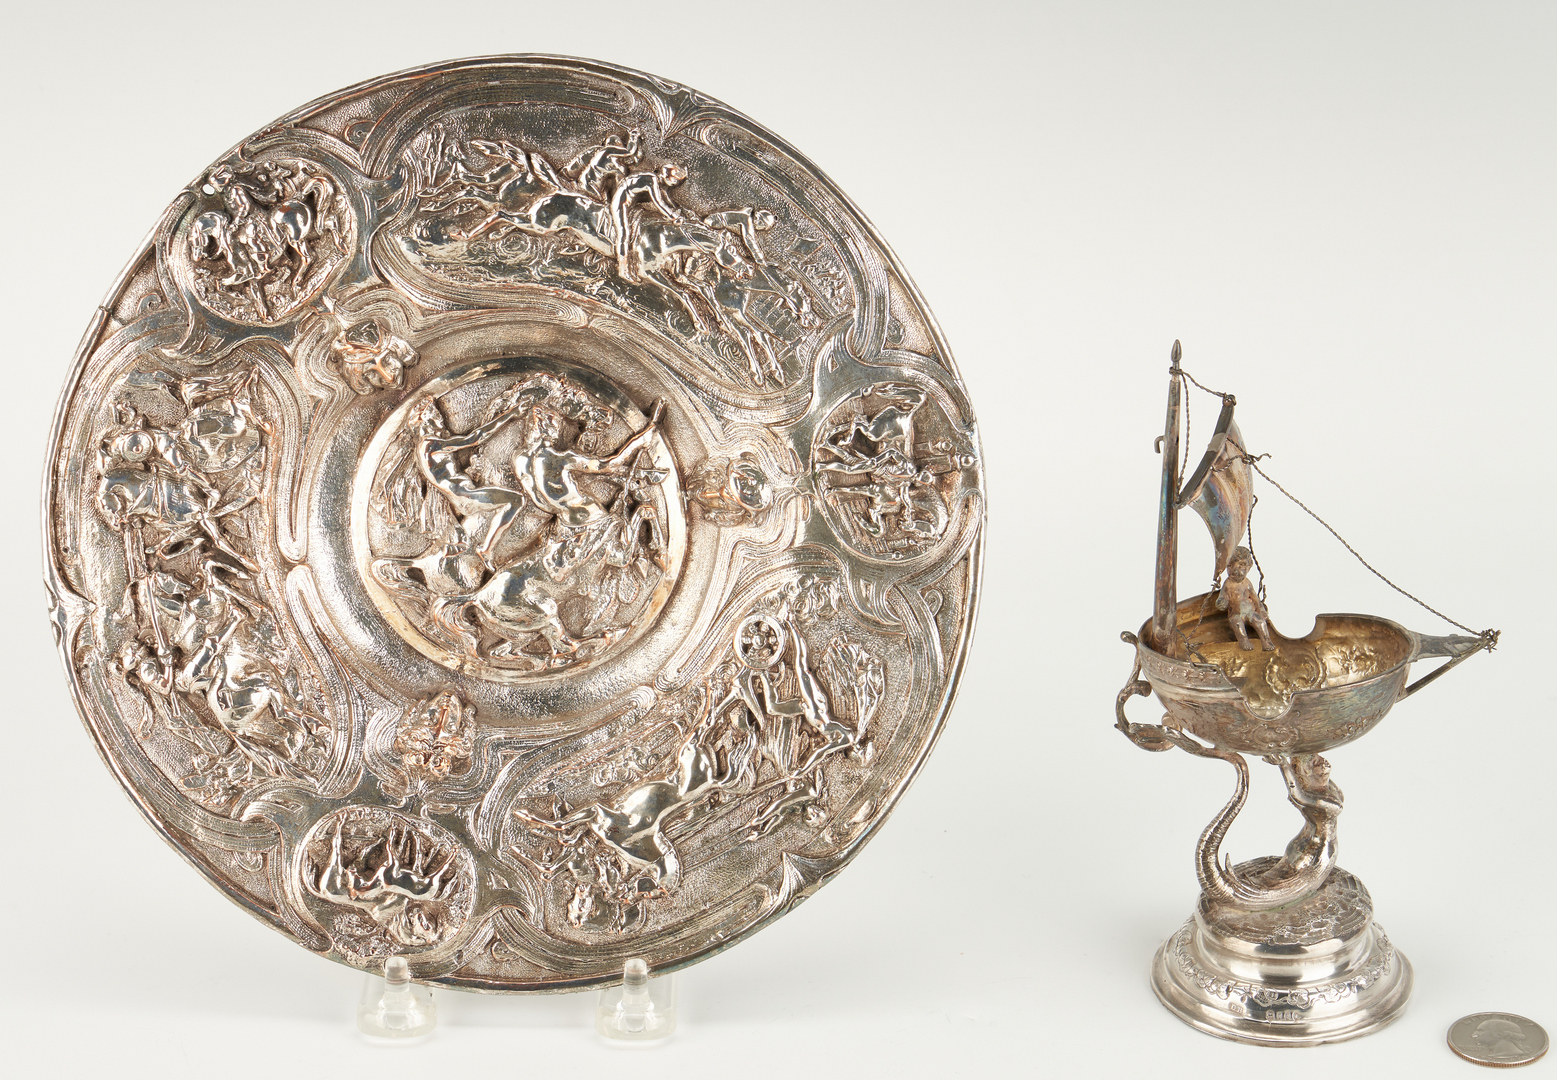 Lot 276: Continental Silver Salt Nef and Horse Motif plate